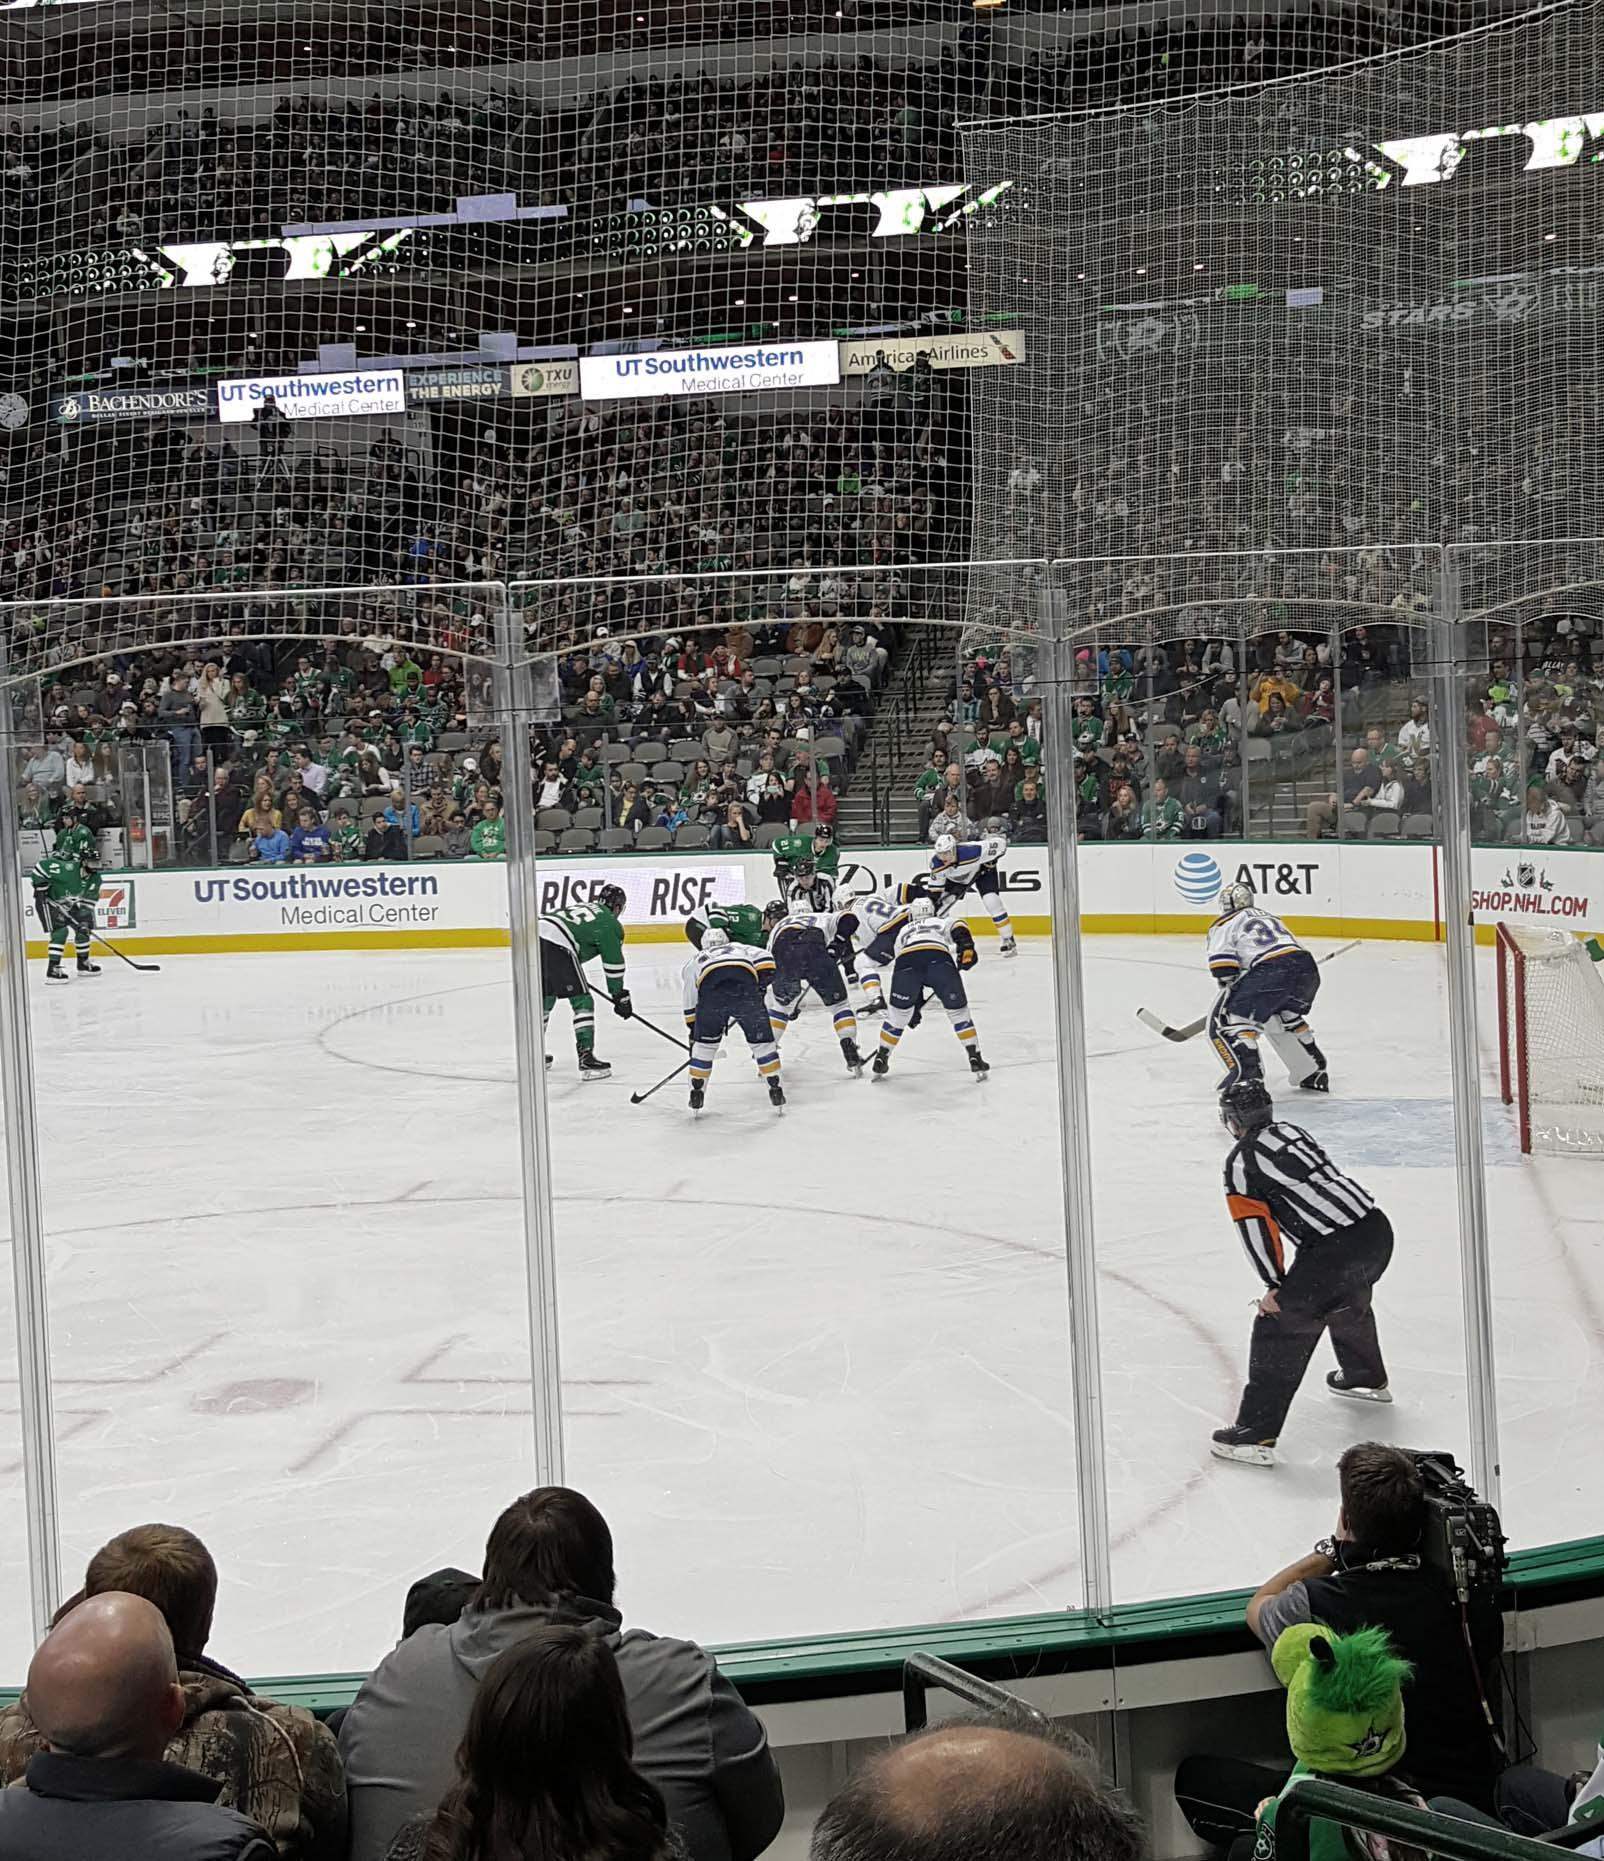 American Airlines Center Section 104 Row G Seat 1